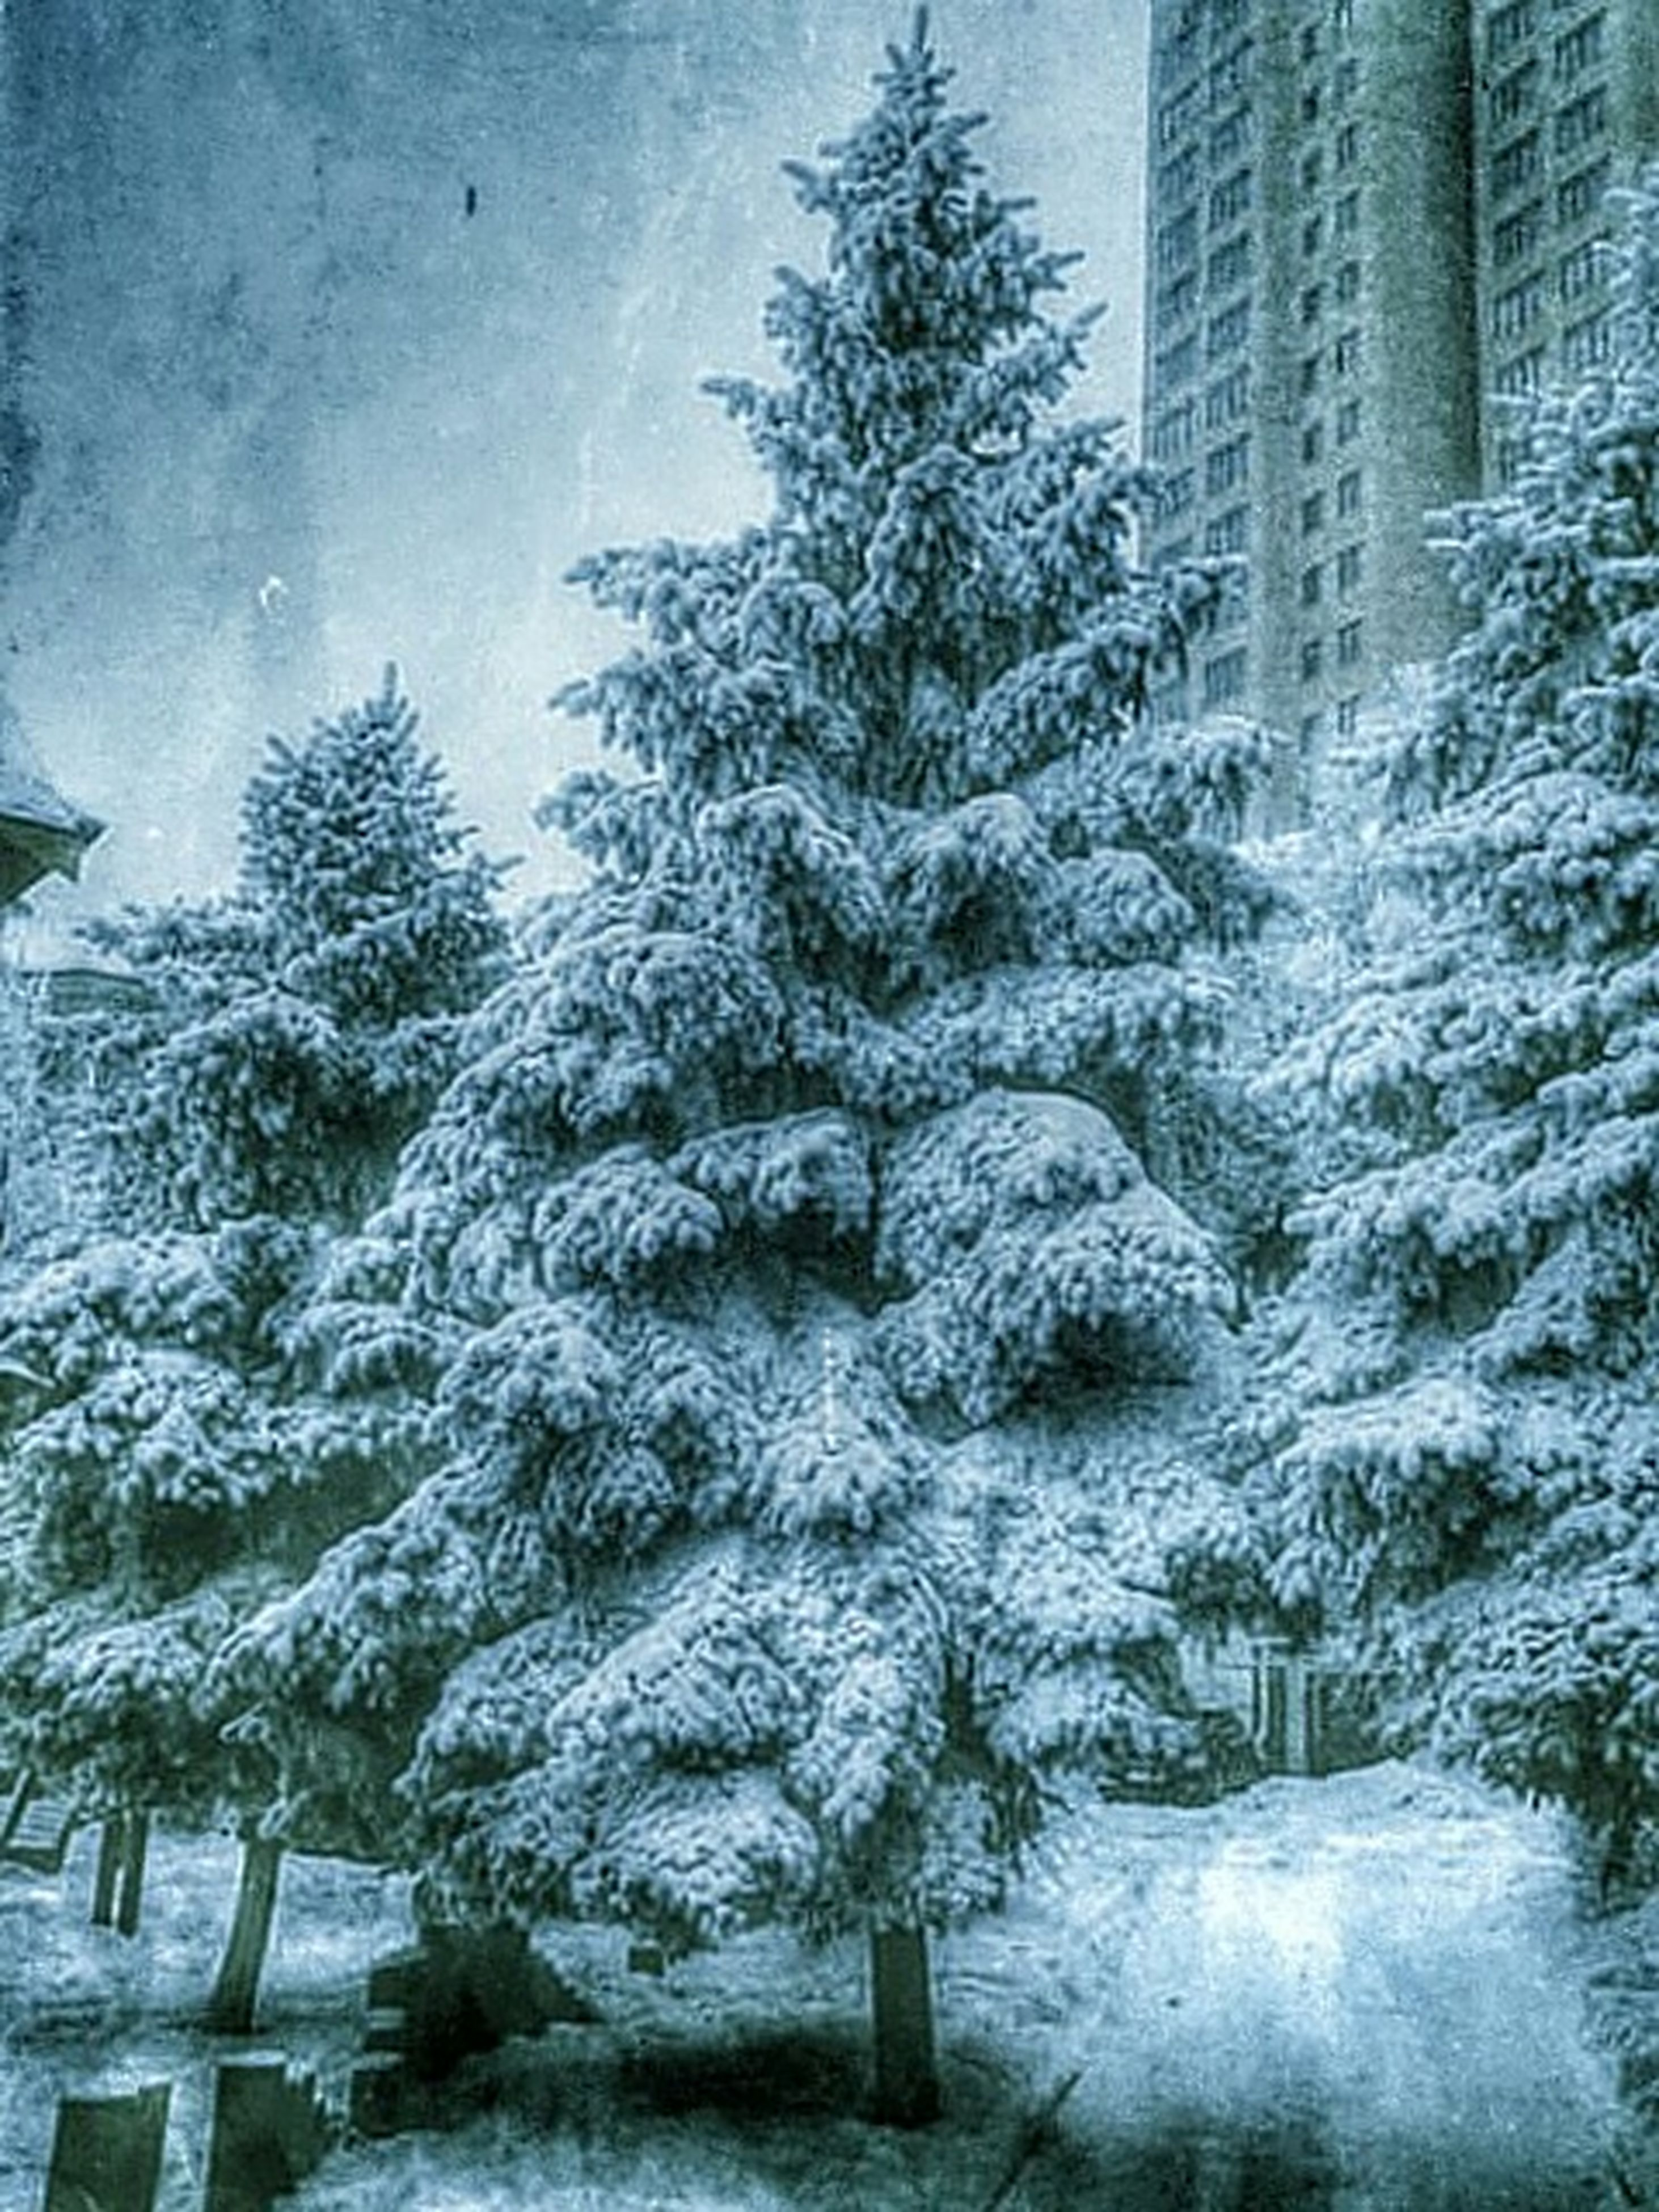 snow, winter, cold temperature, season, weather, covering, tree, frozen, building exterior, bare tree, covered, architecture, built structure, nature, white color, tranquility, day, branch, outdoors, field